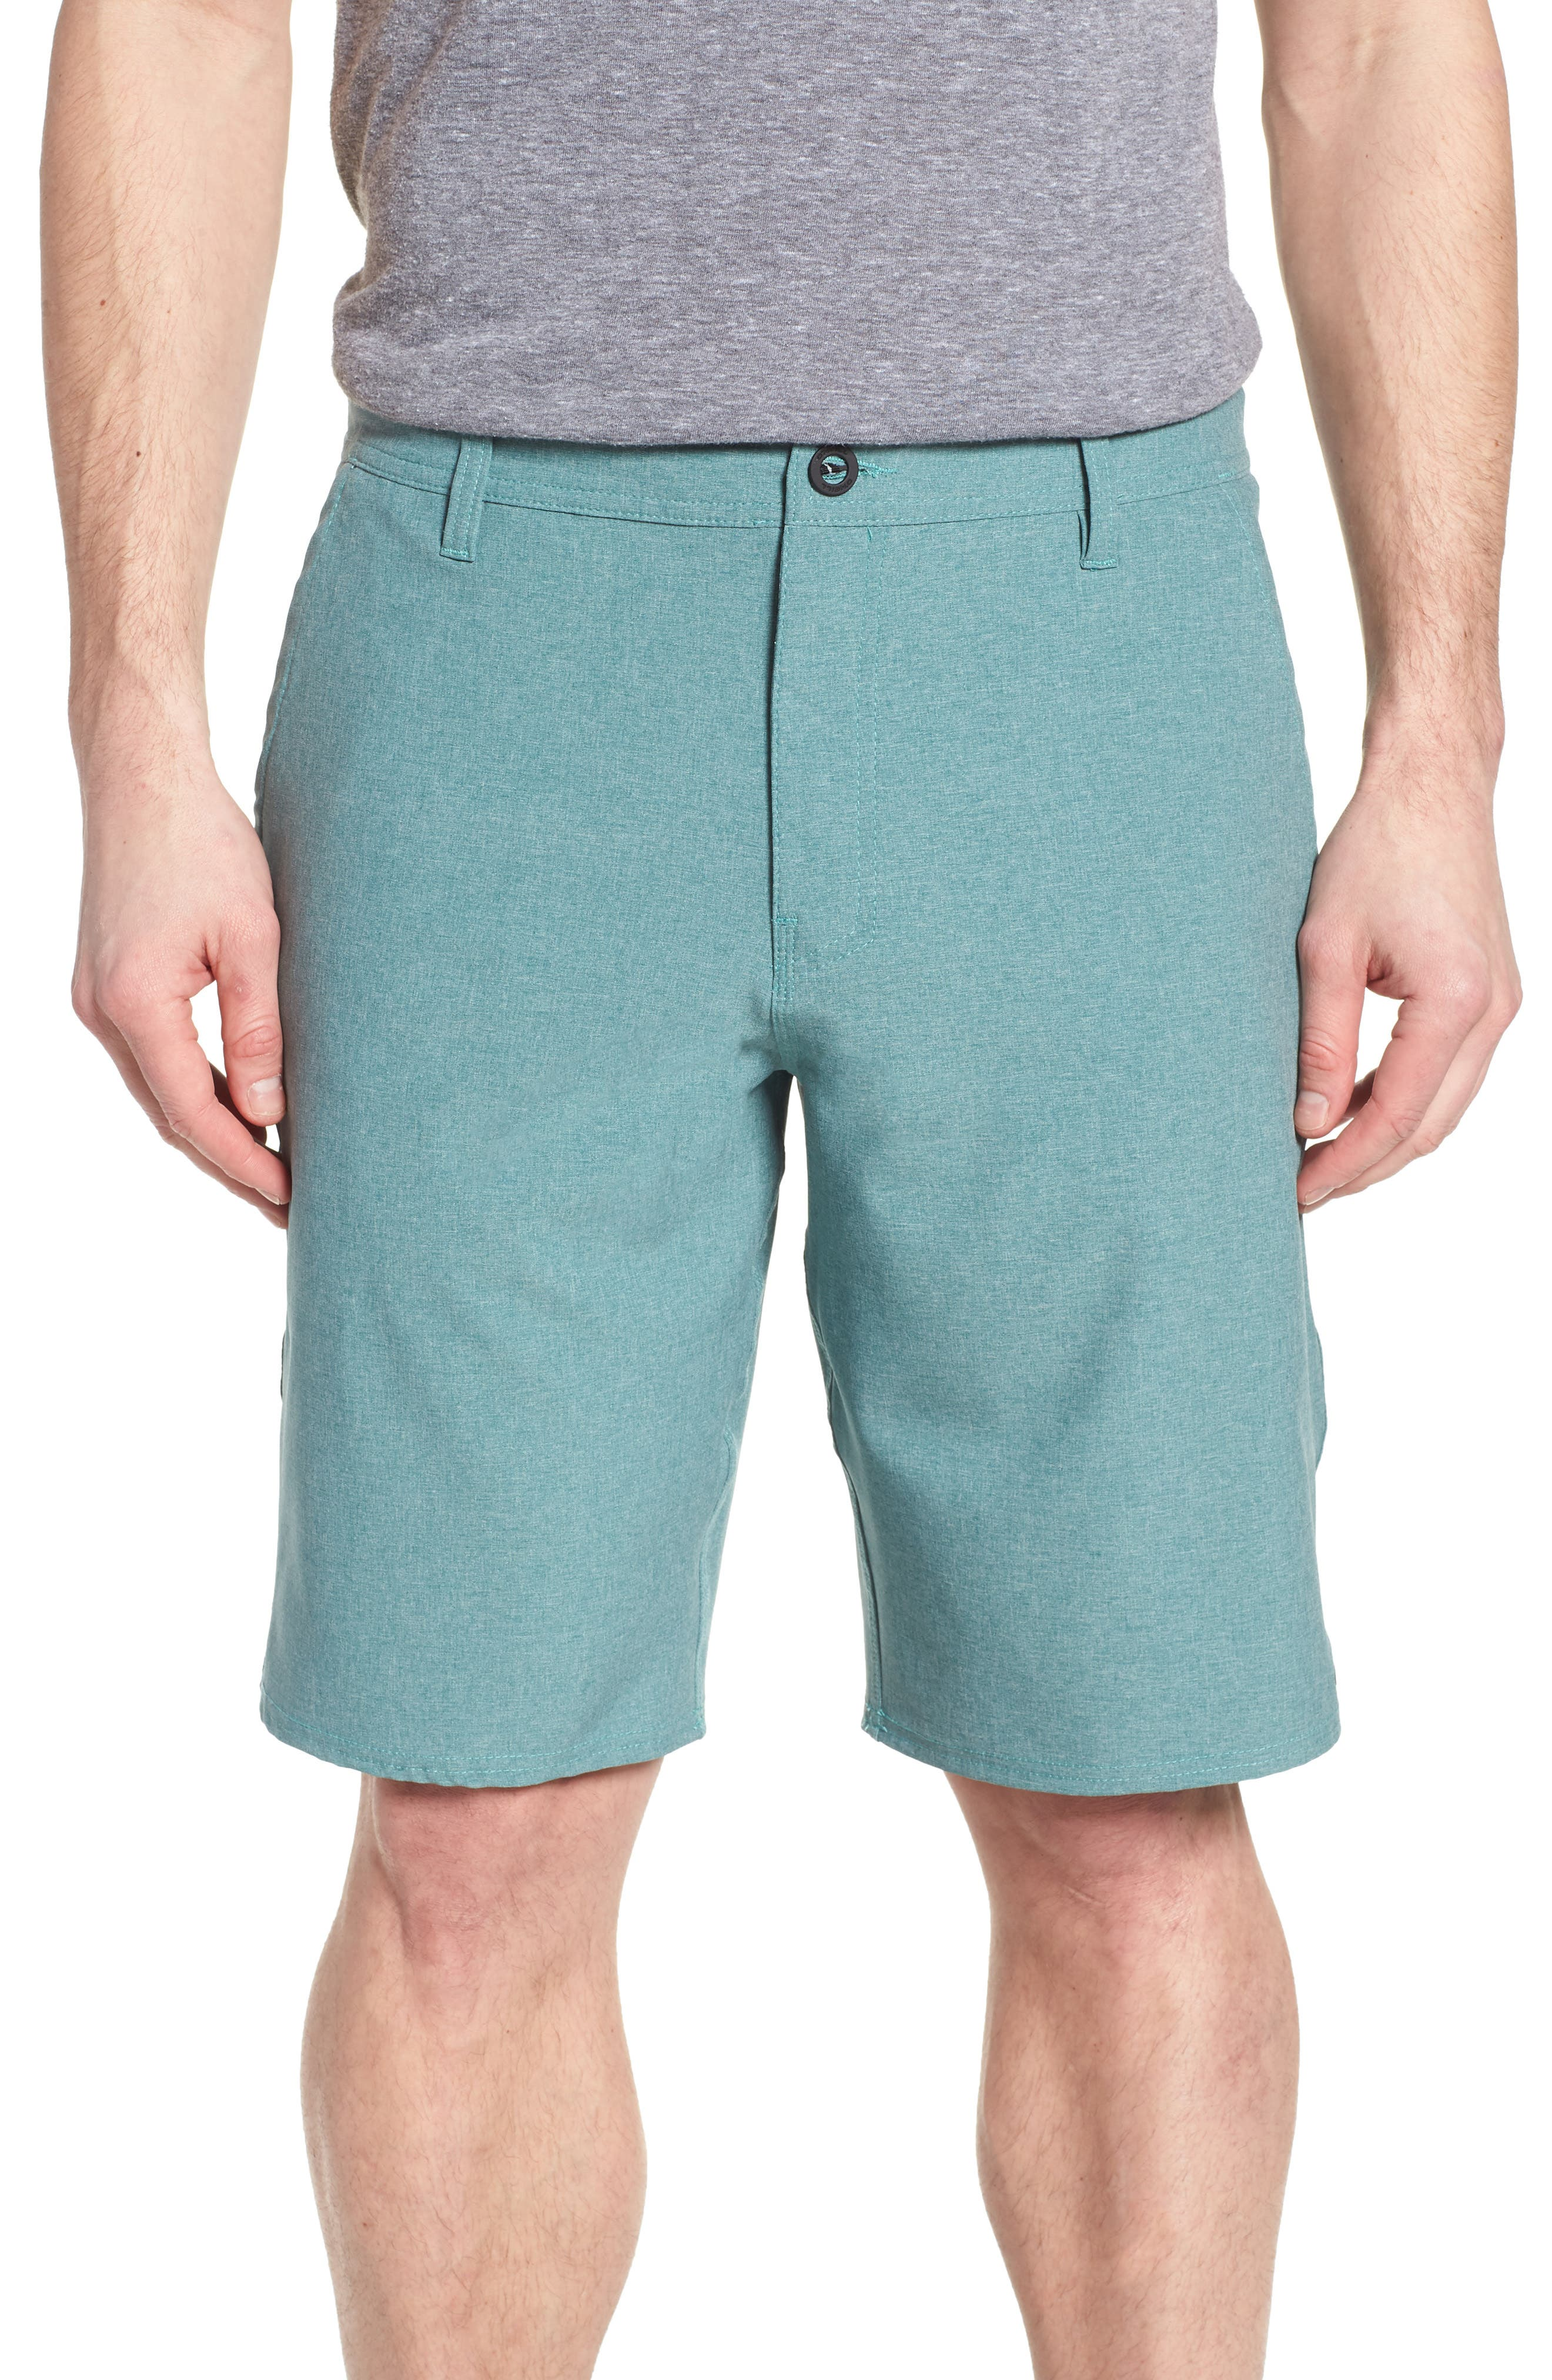 Loaded Heather Hybrid Shorts,                             Main thumbnail 1, color,                             300